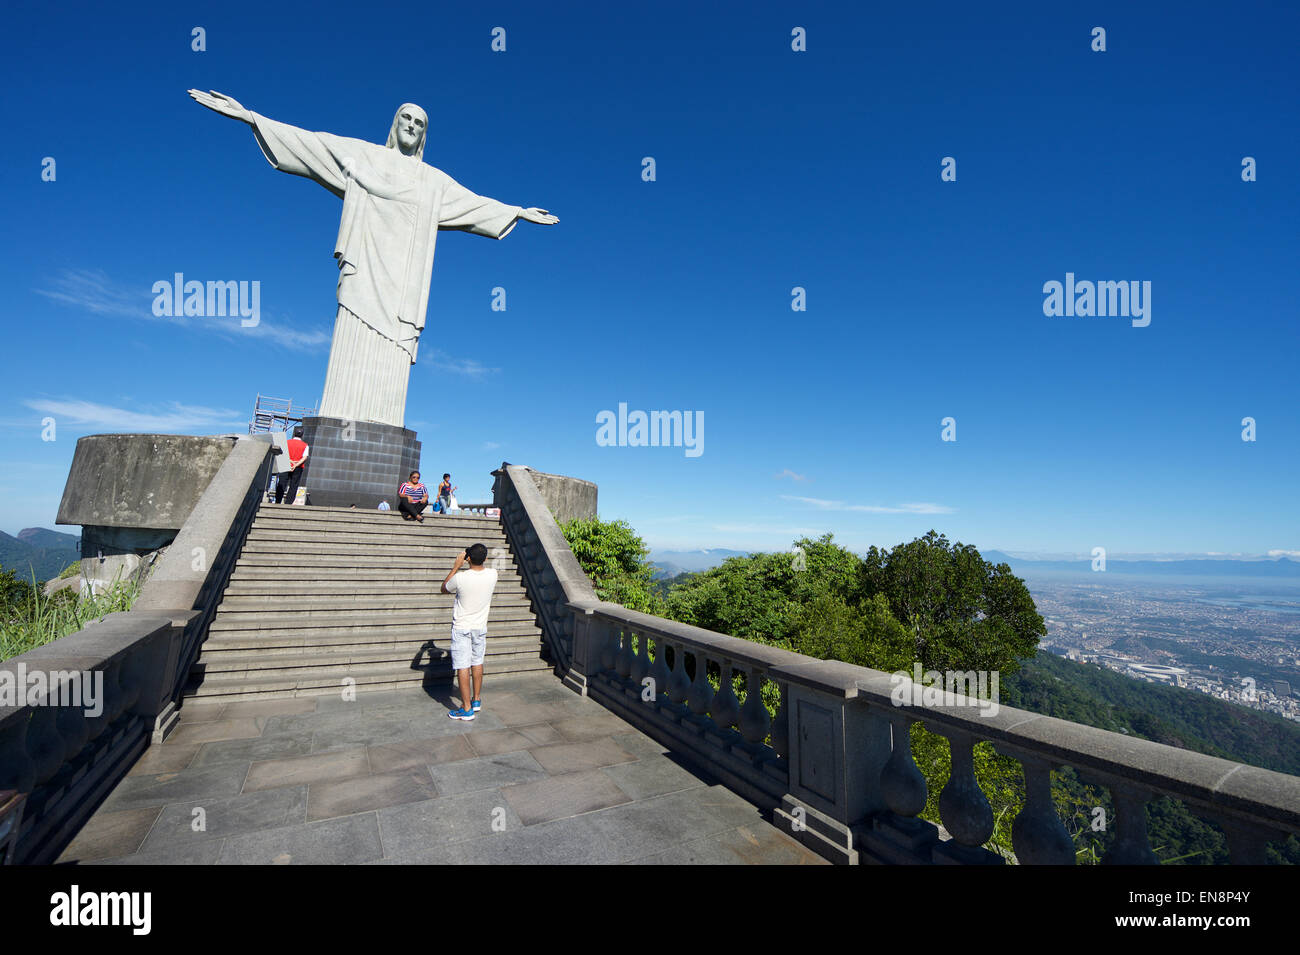 RIO DE JANEIRO, BRAZIL - MARCH 05, 2015: The first group of tourists arrive at the Statue of Christ the Redeemer - Stock Image